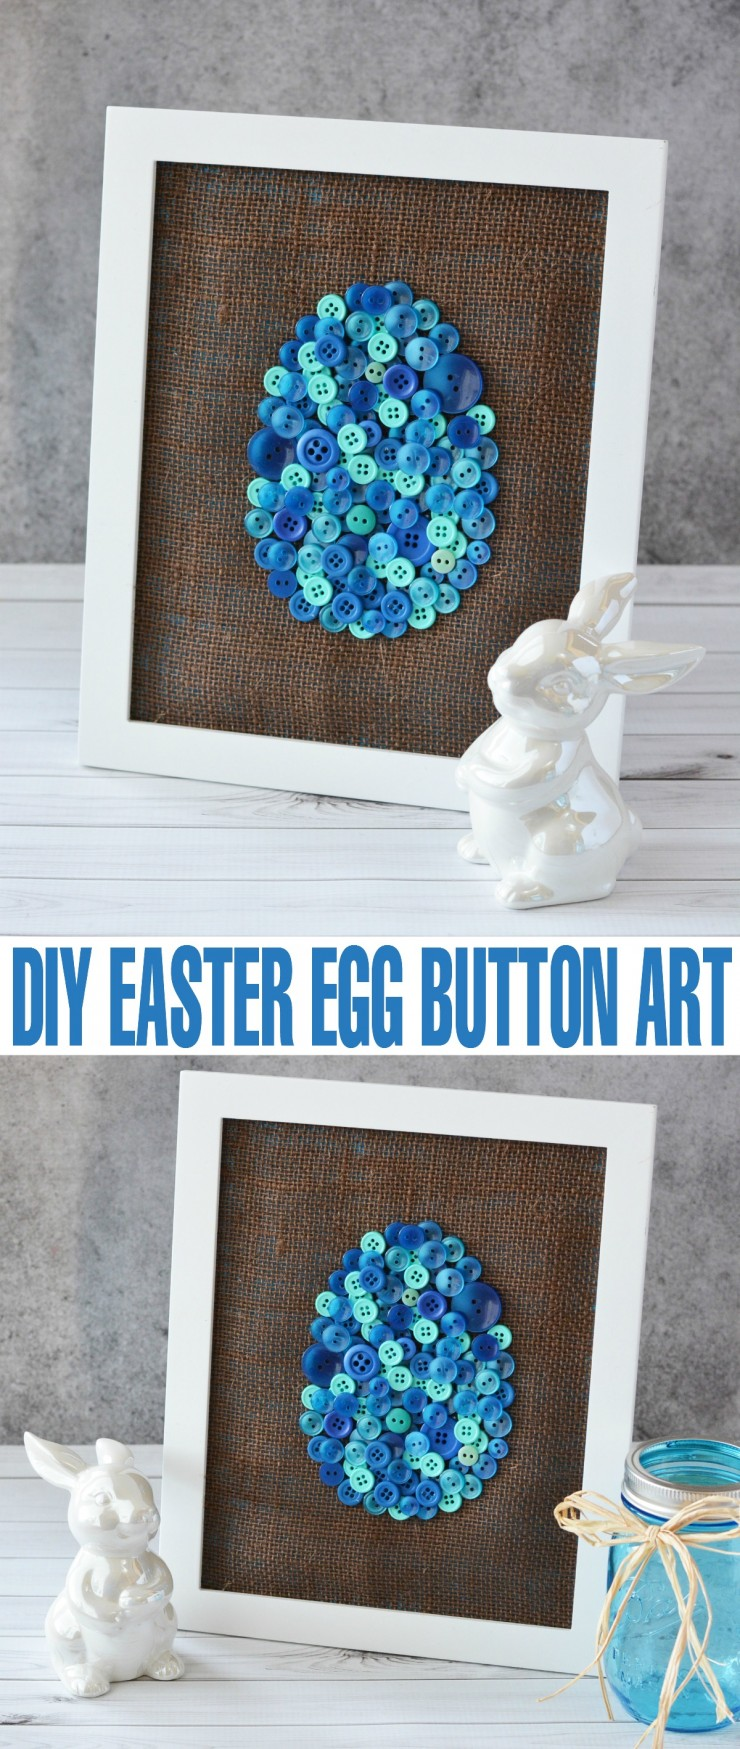 This easy DIY Easter Egg Button Art is a great Easter decor project for the Easter season. Includes a free printable template!